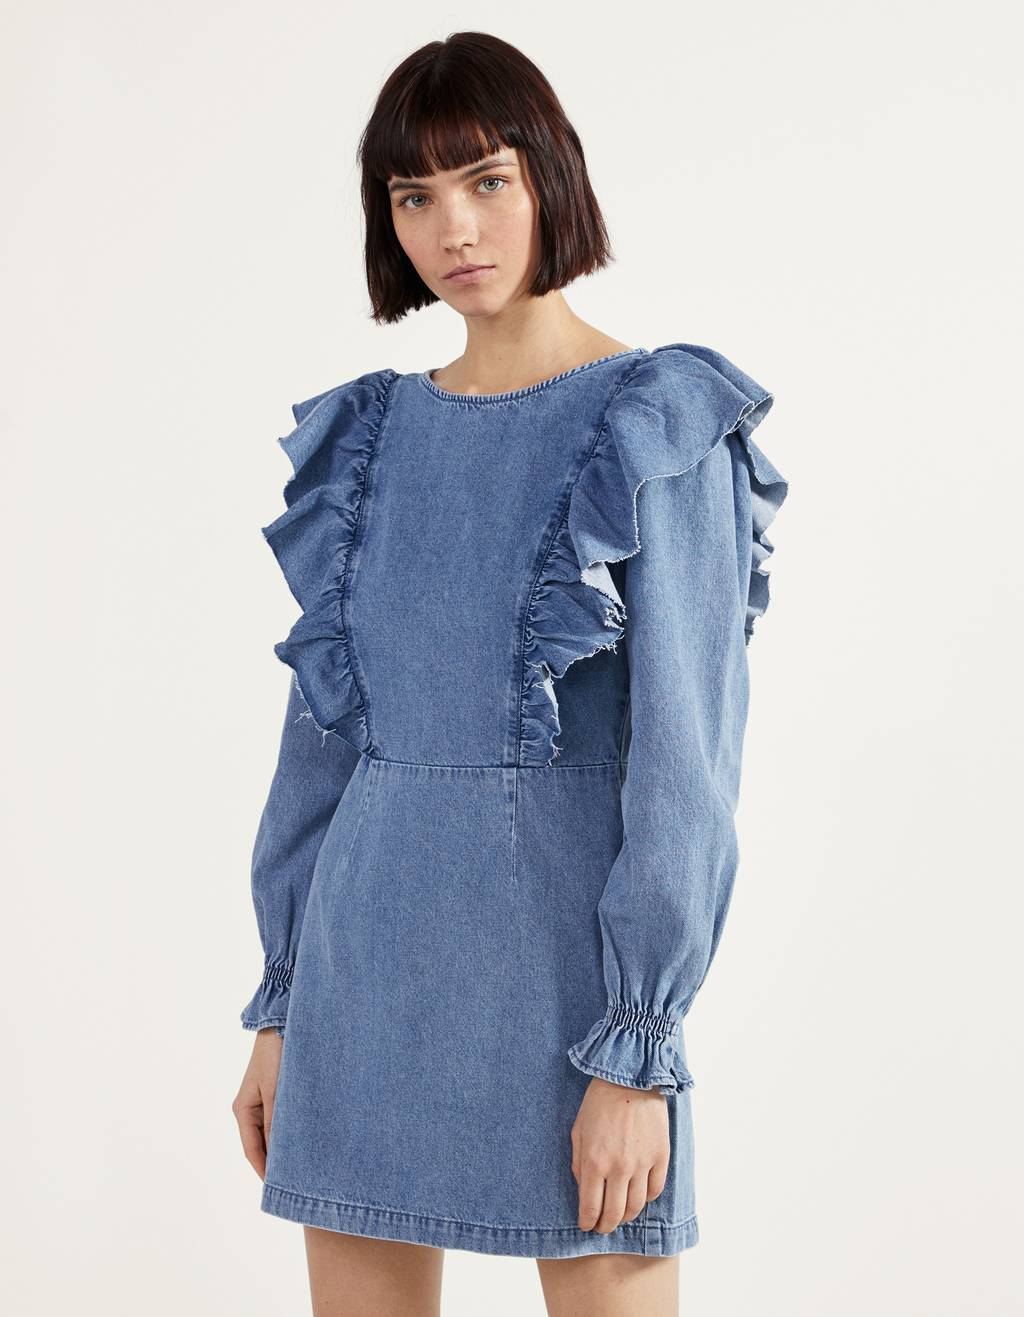 Denim jurk met volants